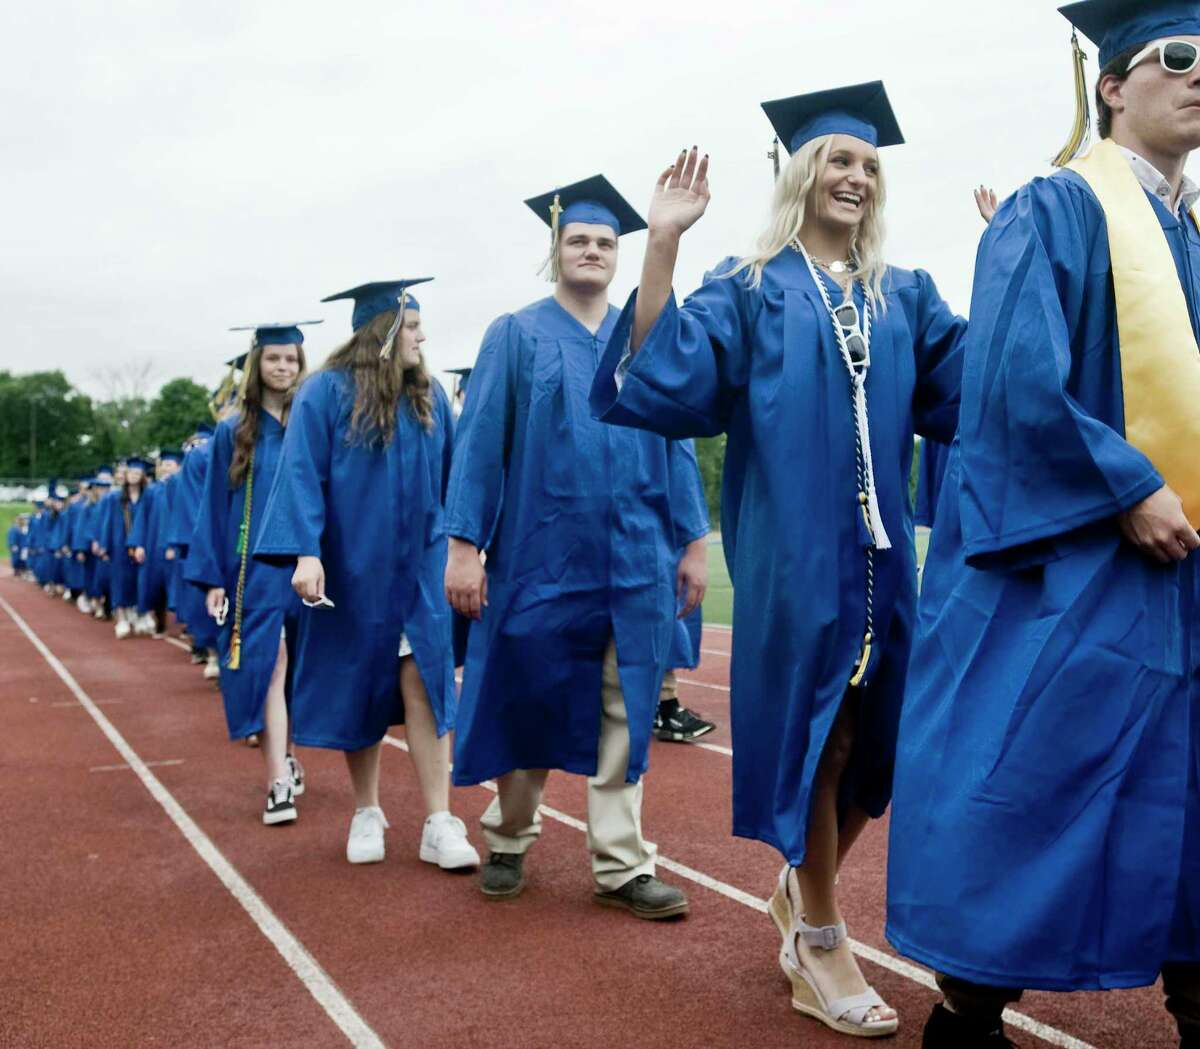 The procession of the Brookfield High School graduation ceremony. Saturday, June 12, 2021